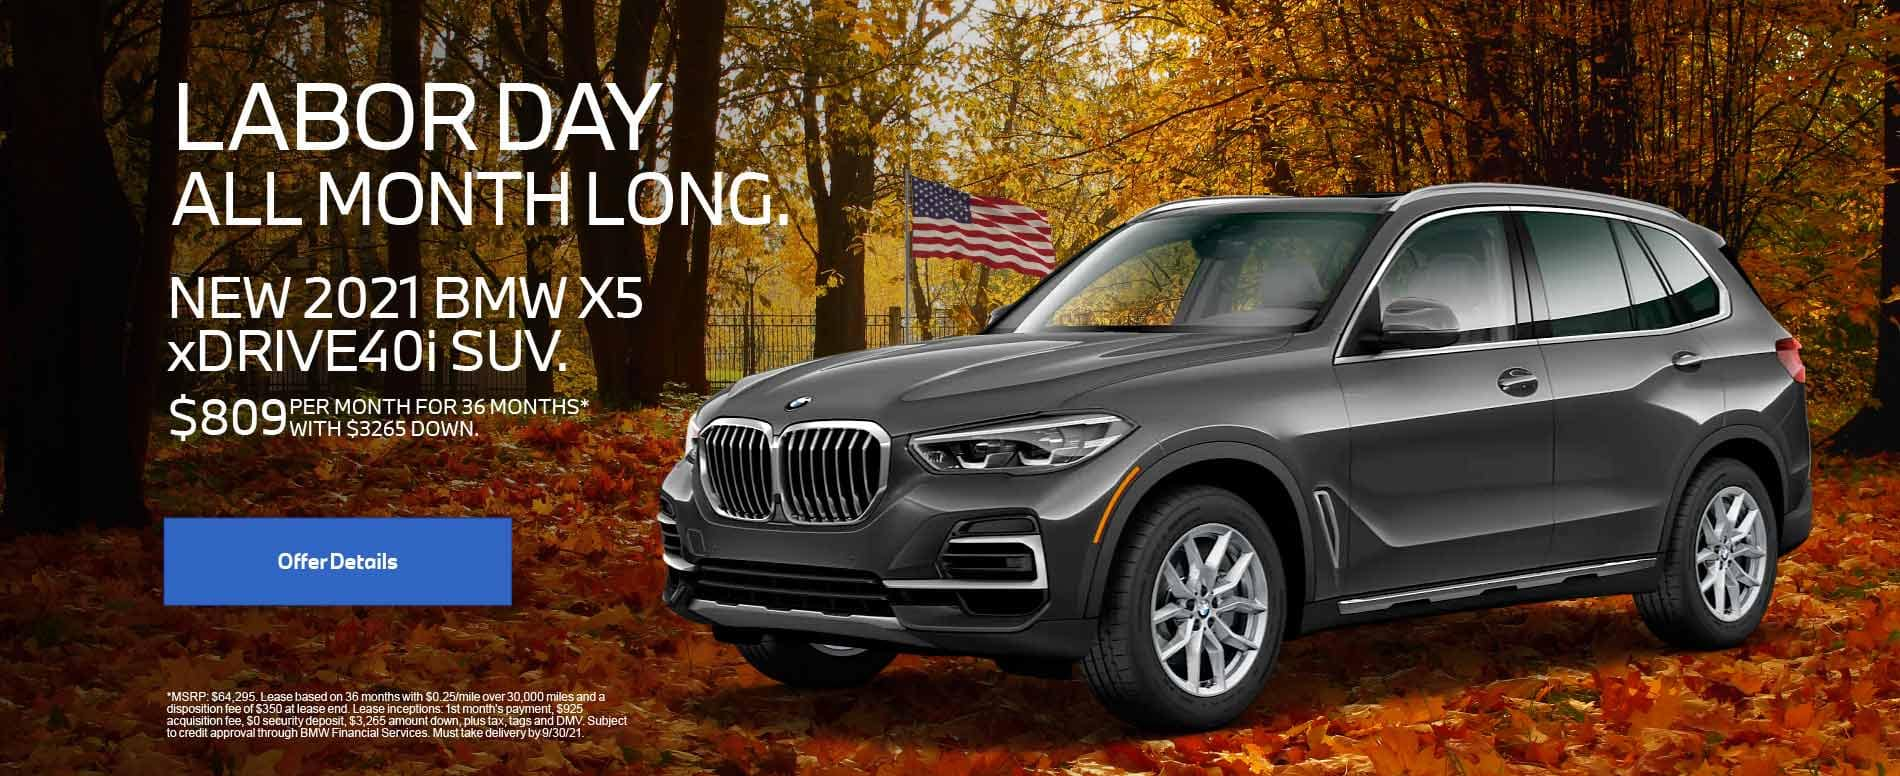 New 2021 BMW X5 xDRIVE40i SUV. $809 PER MONTH FOR 36 months with $3,265 Down.